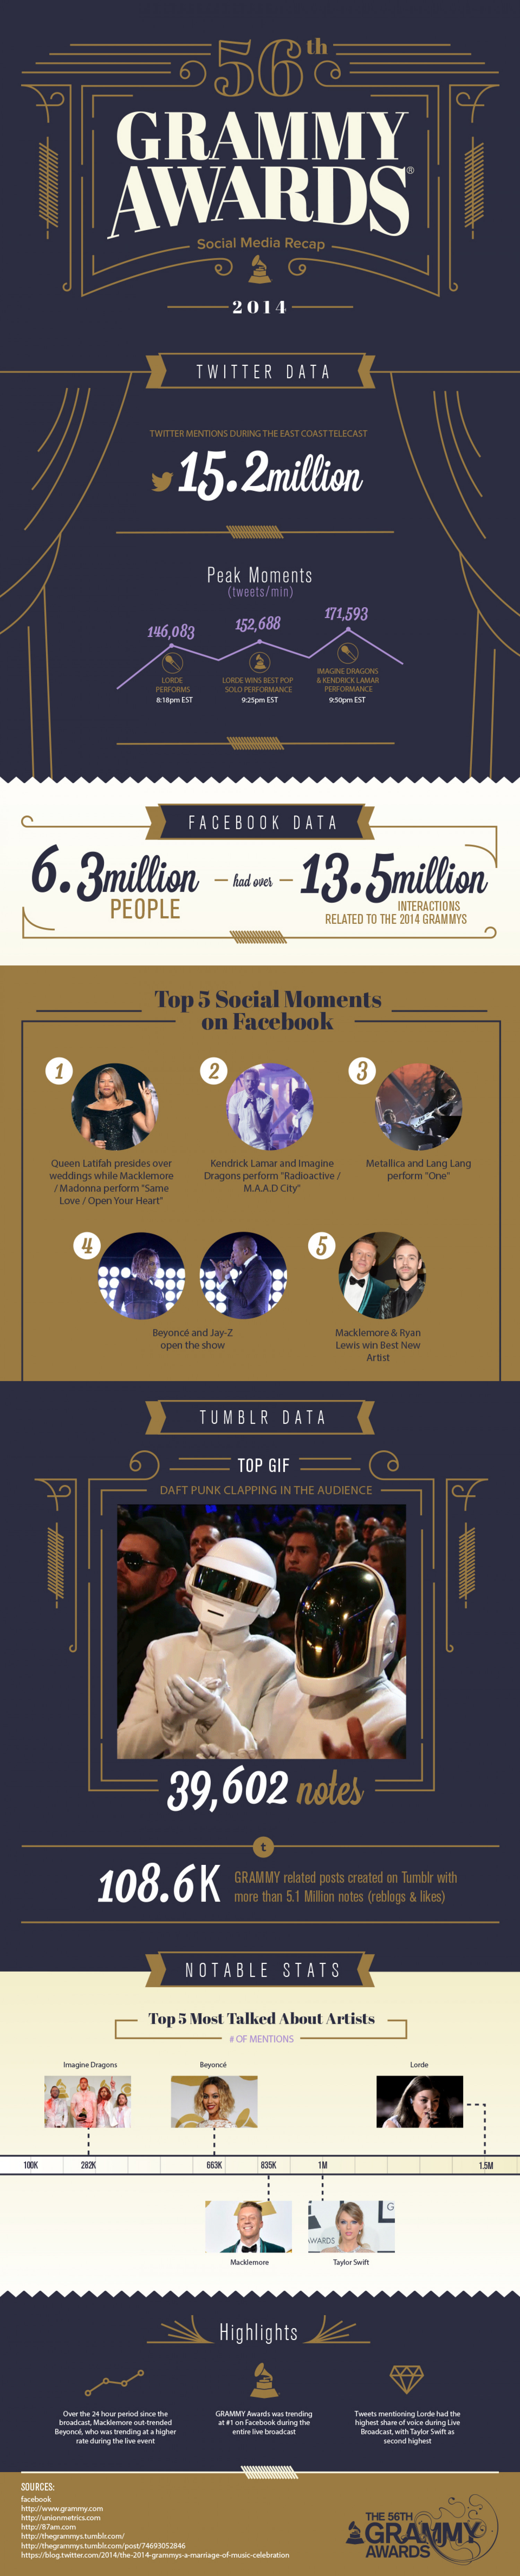 56th GRAMMY Awards Social Media Recap Infographic